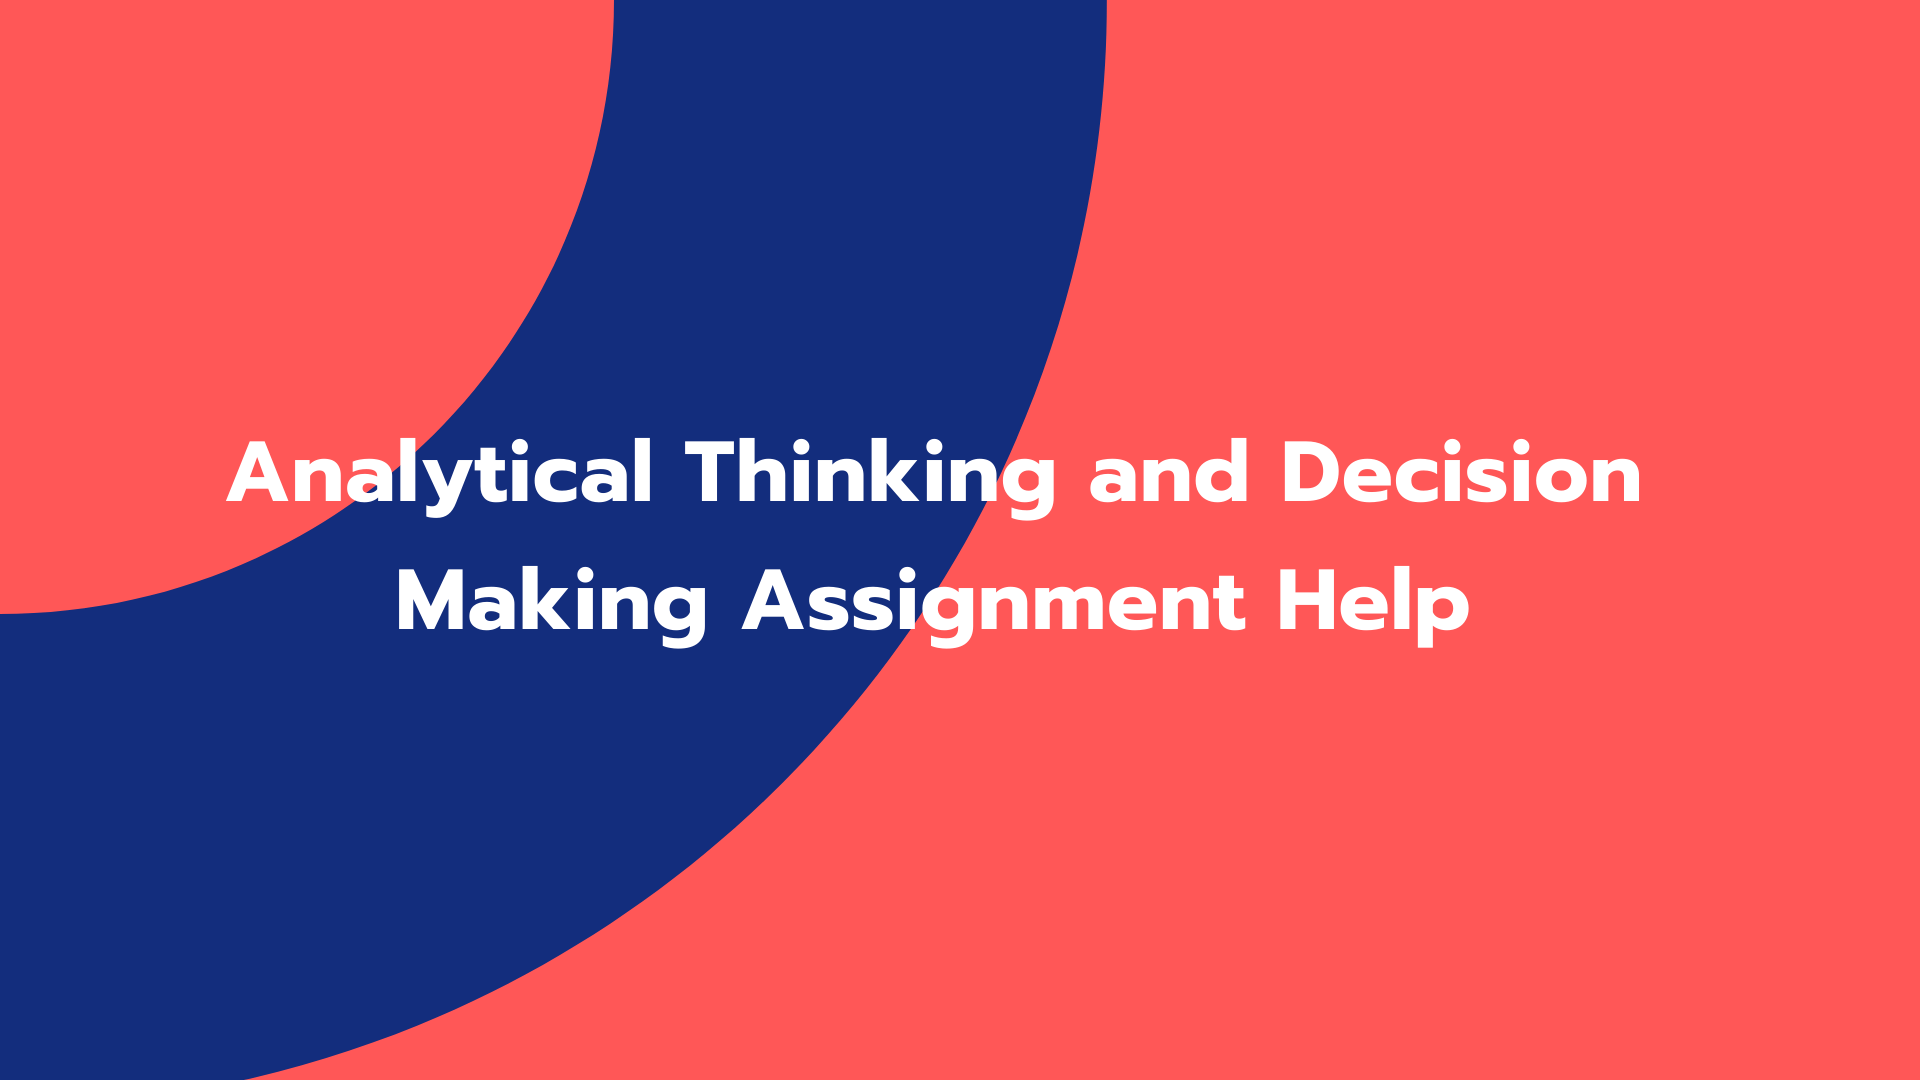 Analytical Thinking and Decision Making Assignment Help